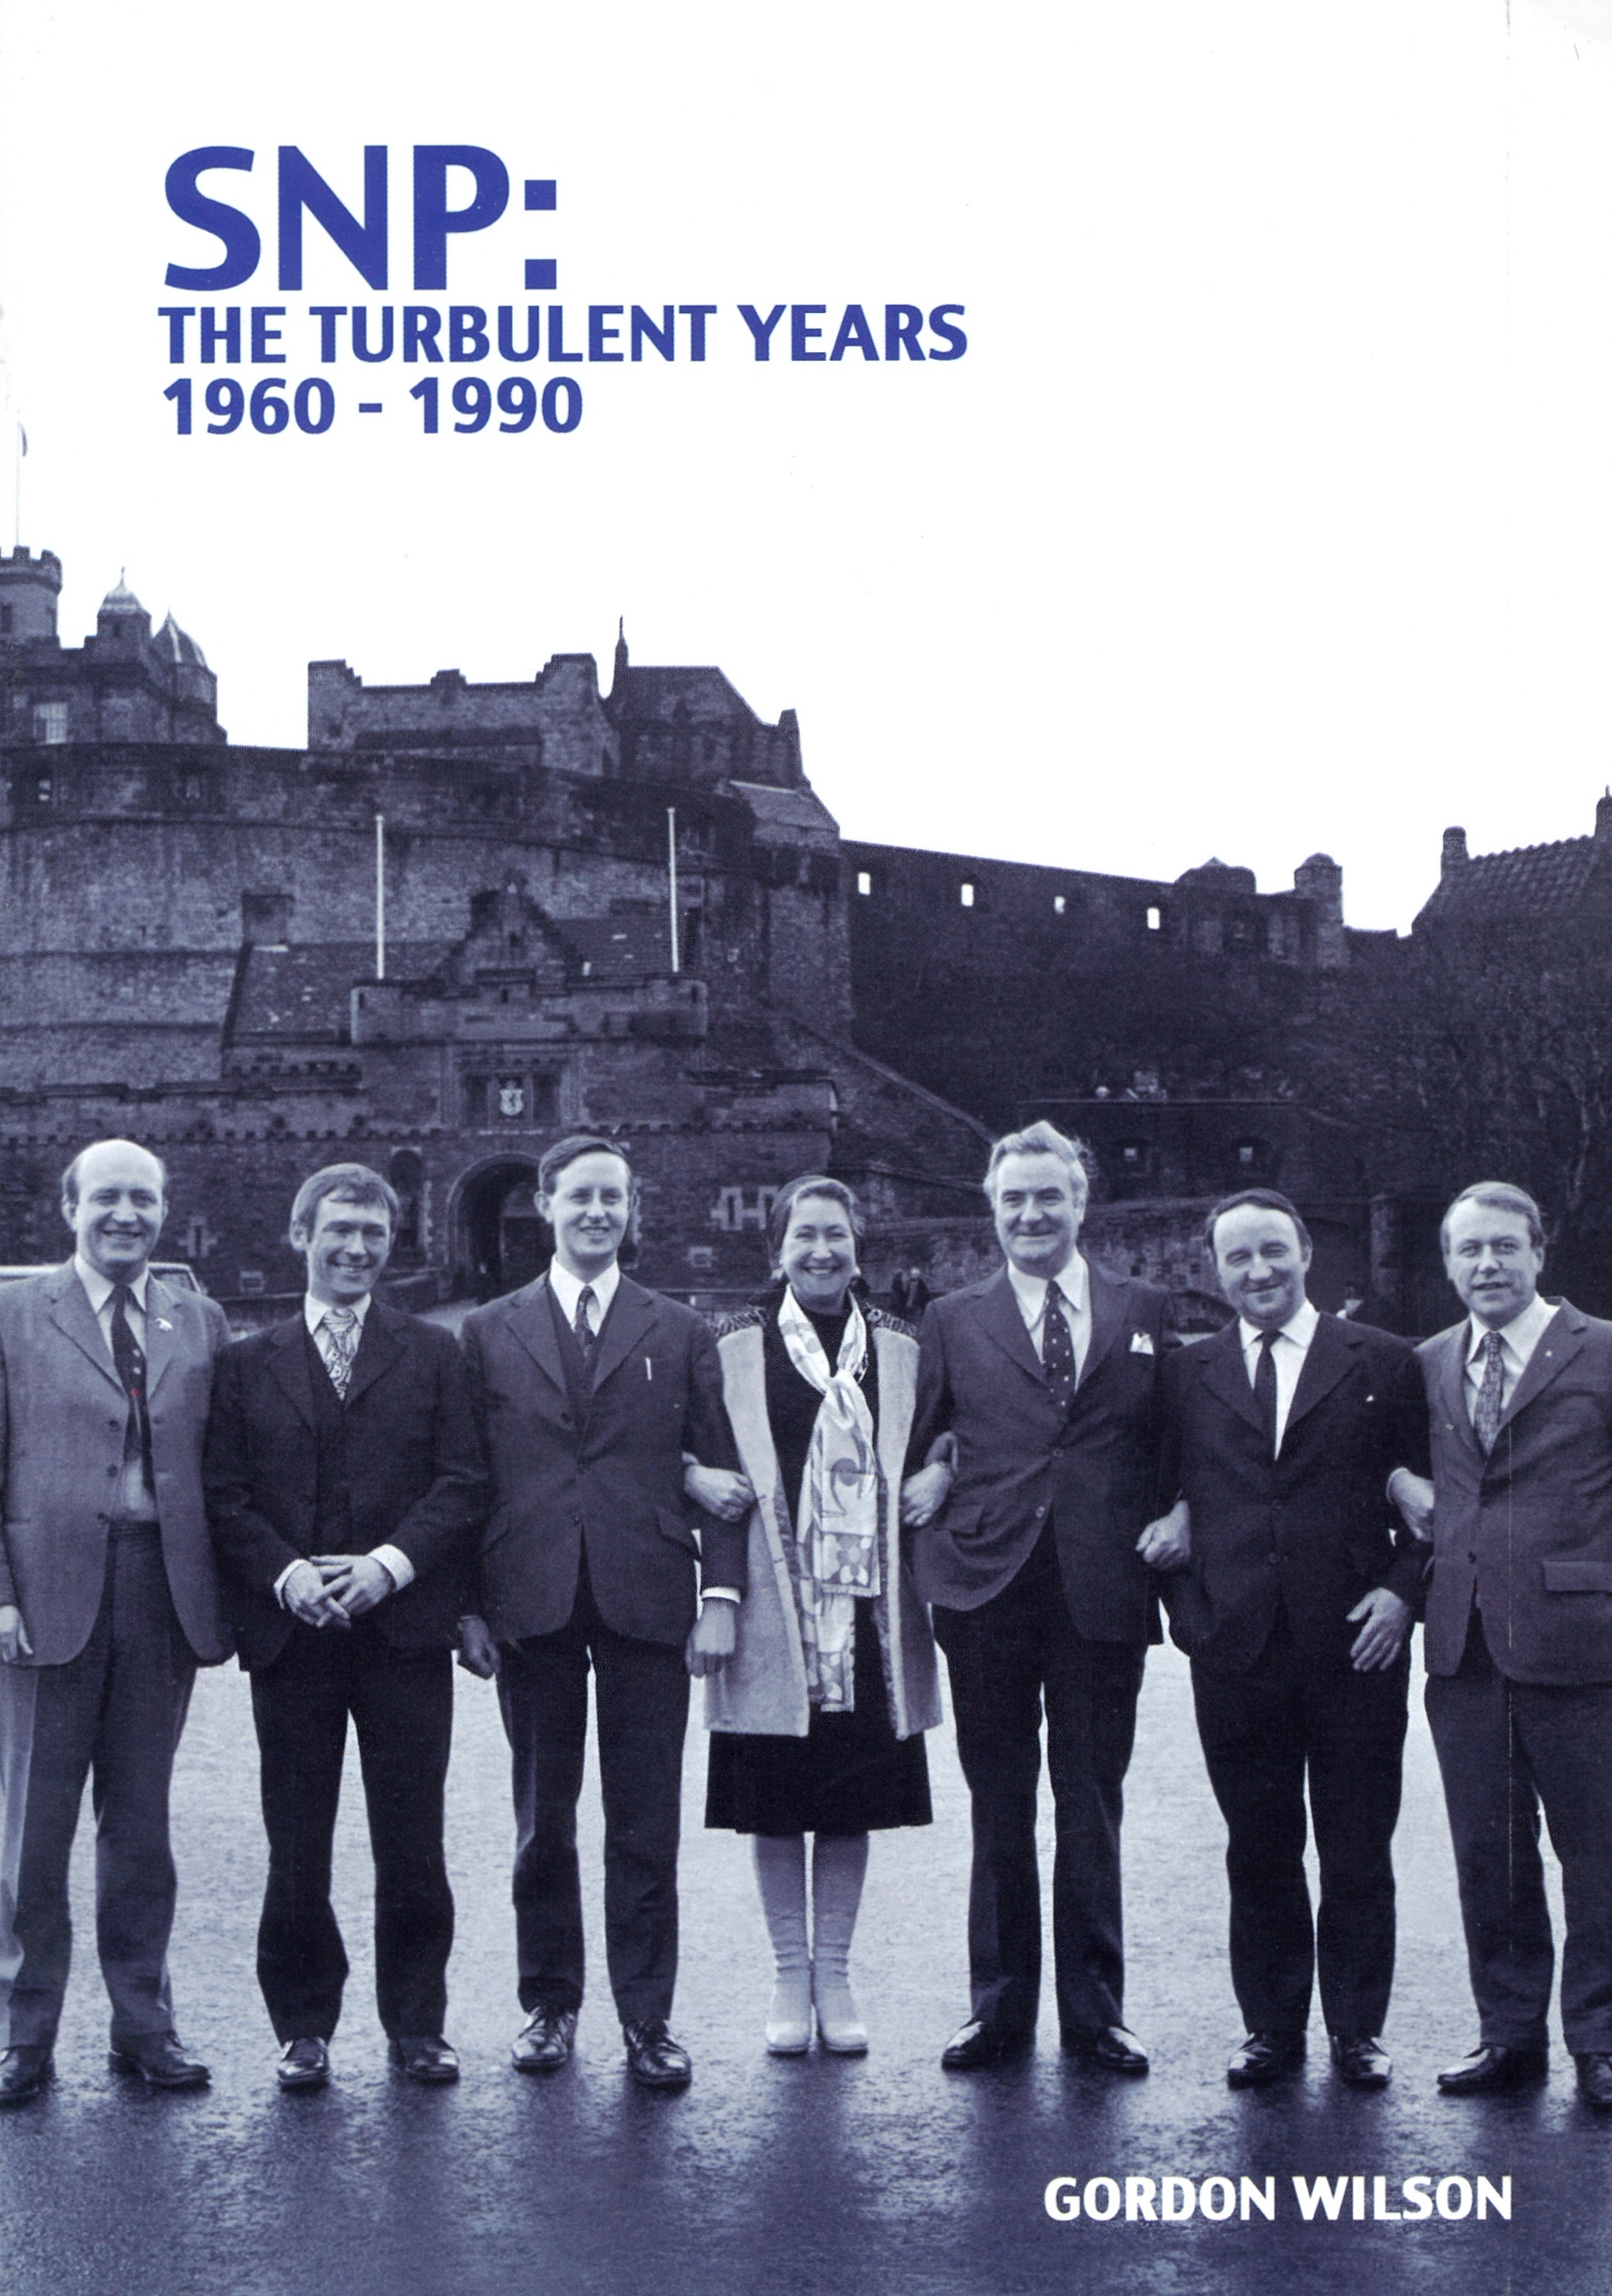 SNP: The Turbulent Years 1960 - 1990: A History of the Scottish National Party